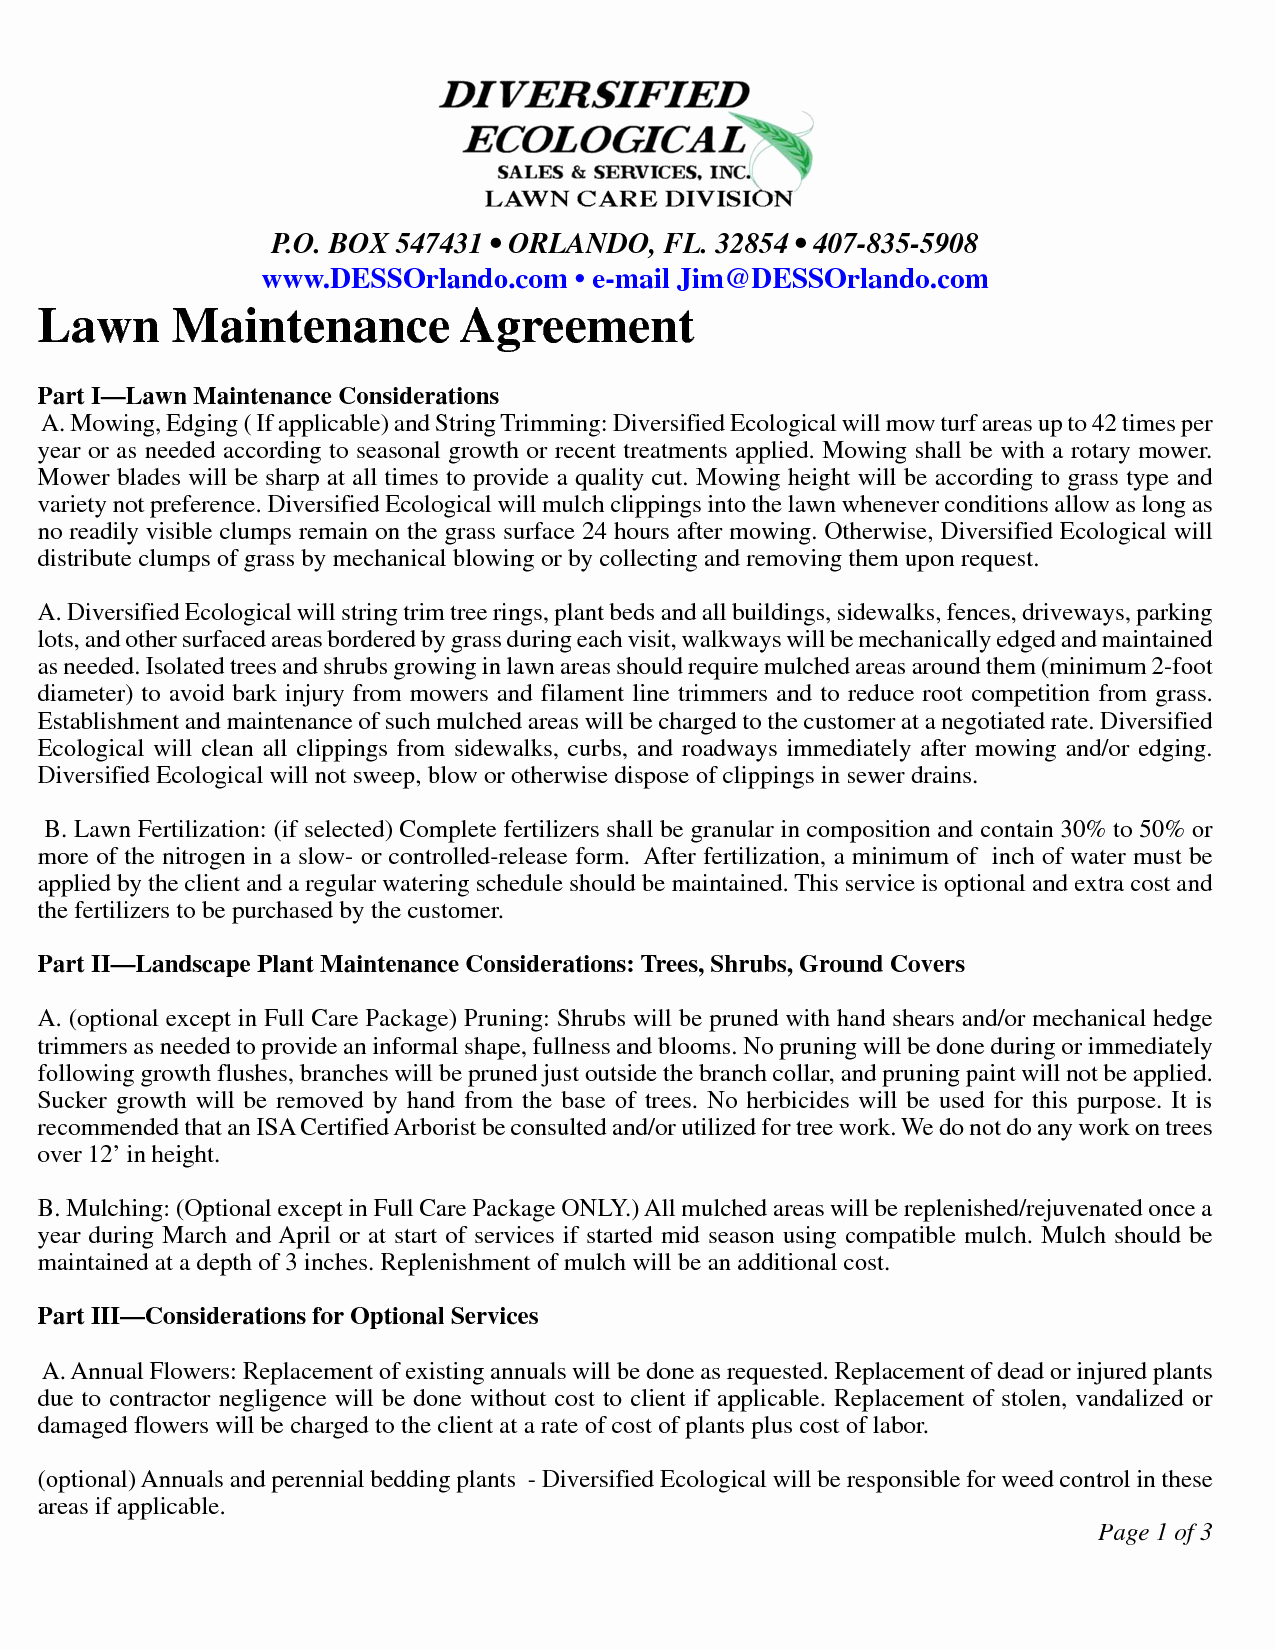 Lawn Care Contract Template Fresh Lawn Maintenance Contract Agreement Free Printable Documents